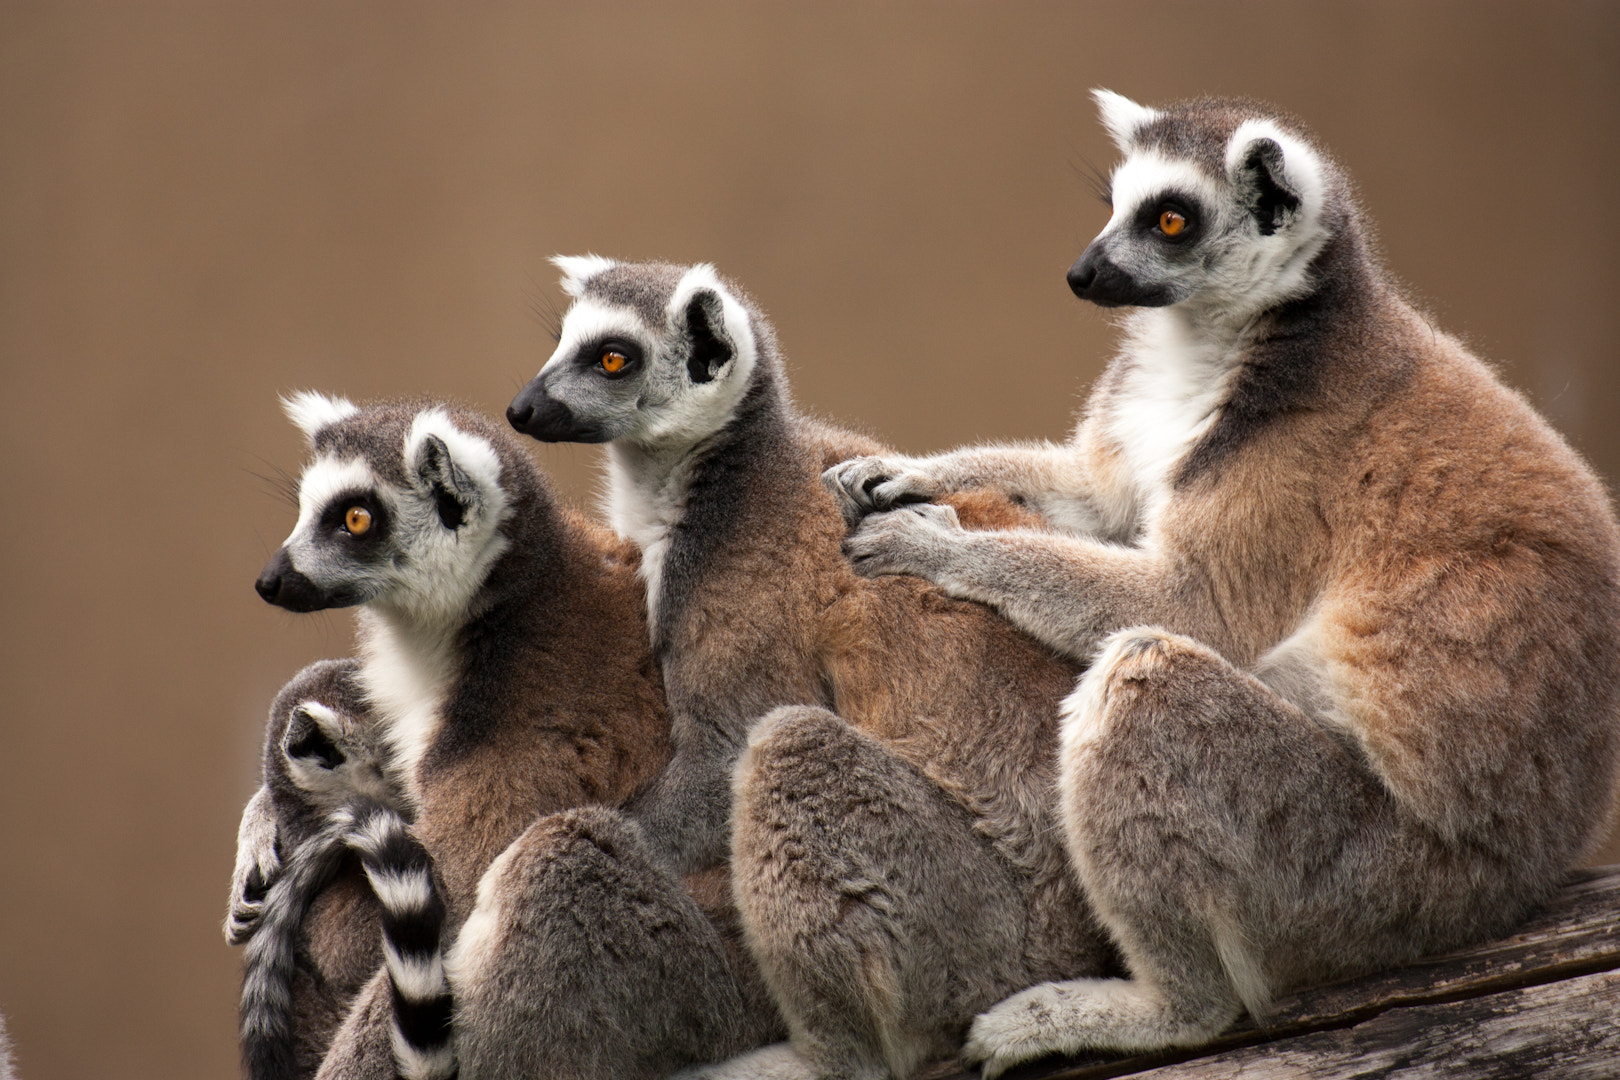 Photograph Lemur baby with his family by L. G. - luigig75 on 500px